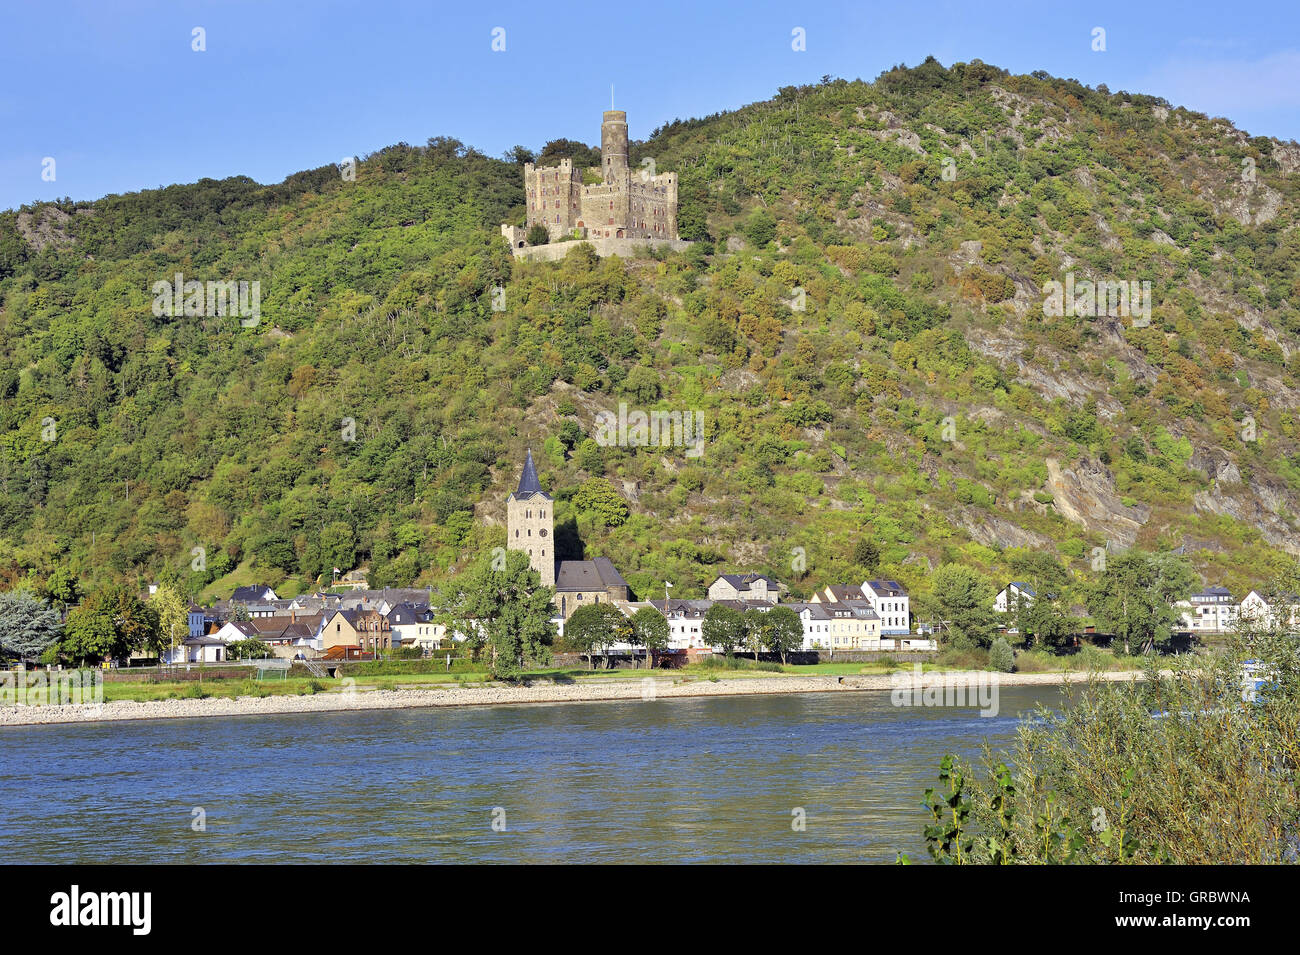 Maus Castle Above The Village Of Wellmich, Near Town Sankt Goarshausen, Upper Middle Rhine Valley, Germany Stock Photo